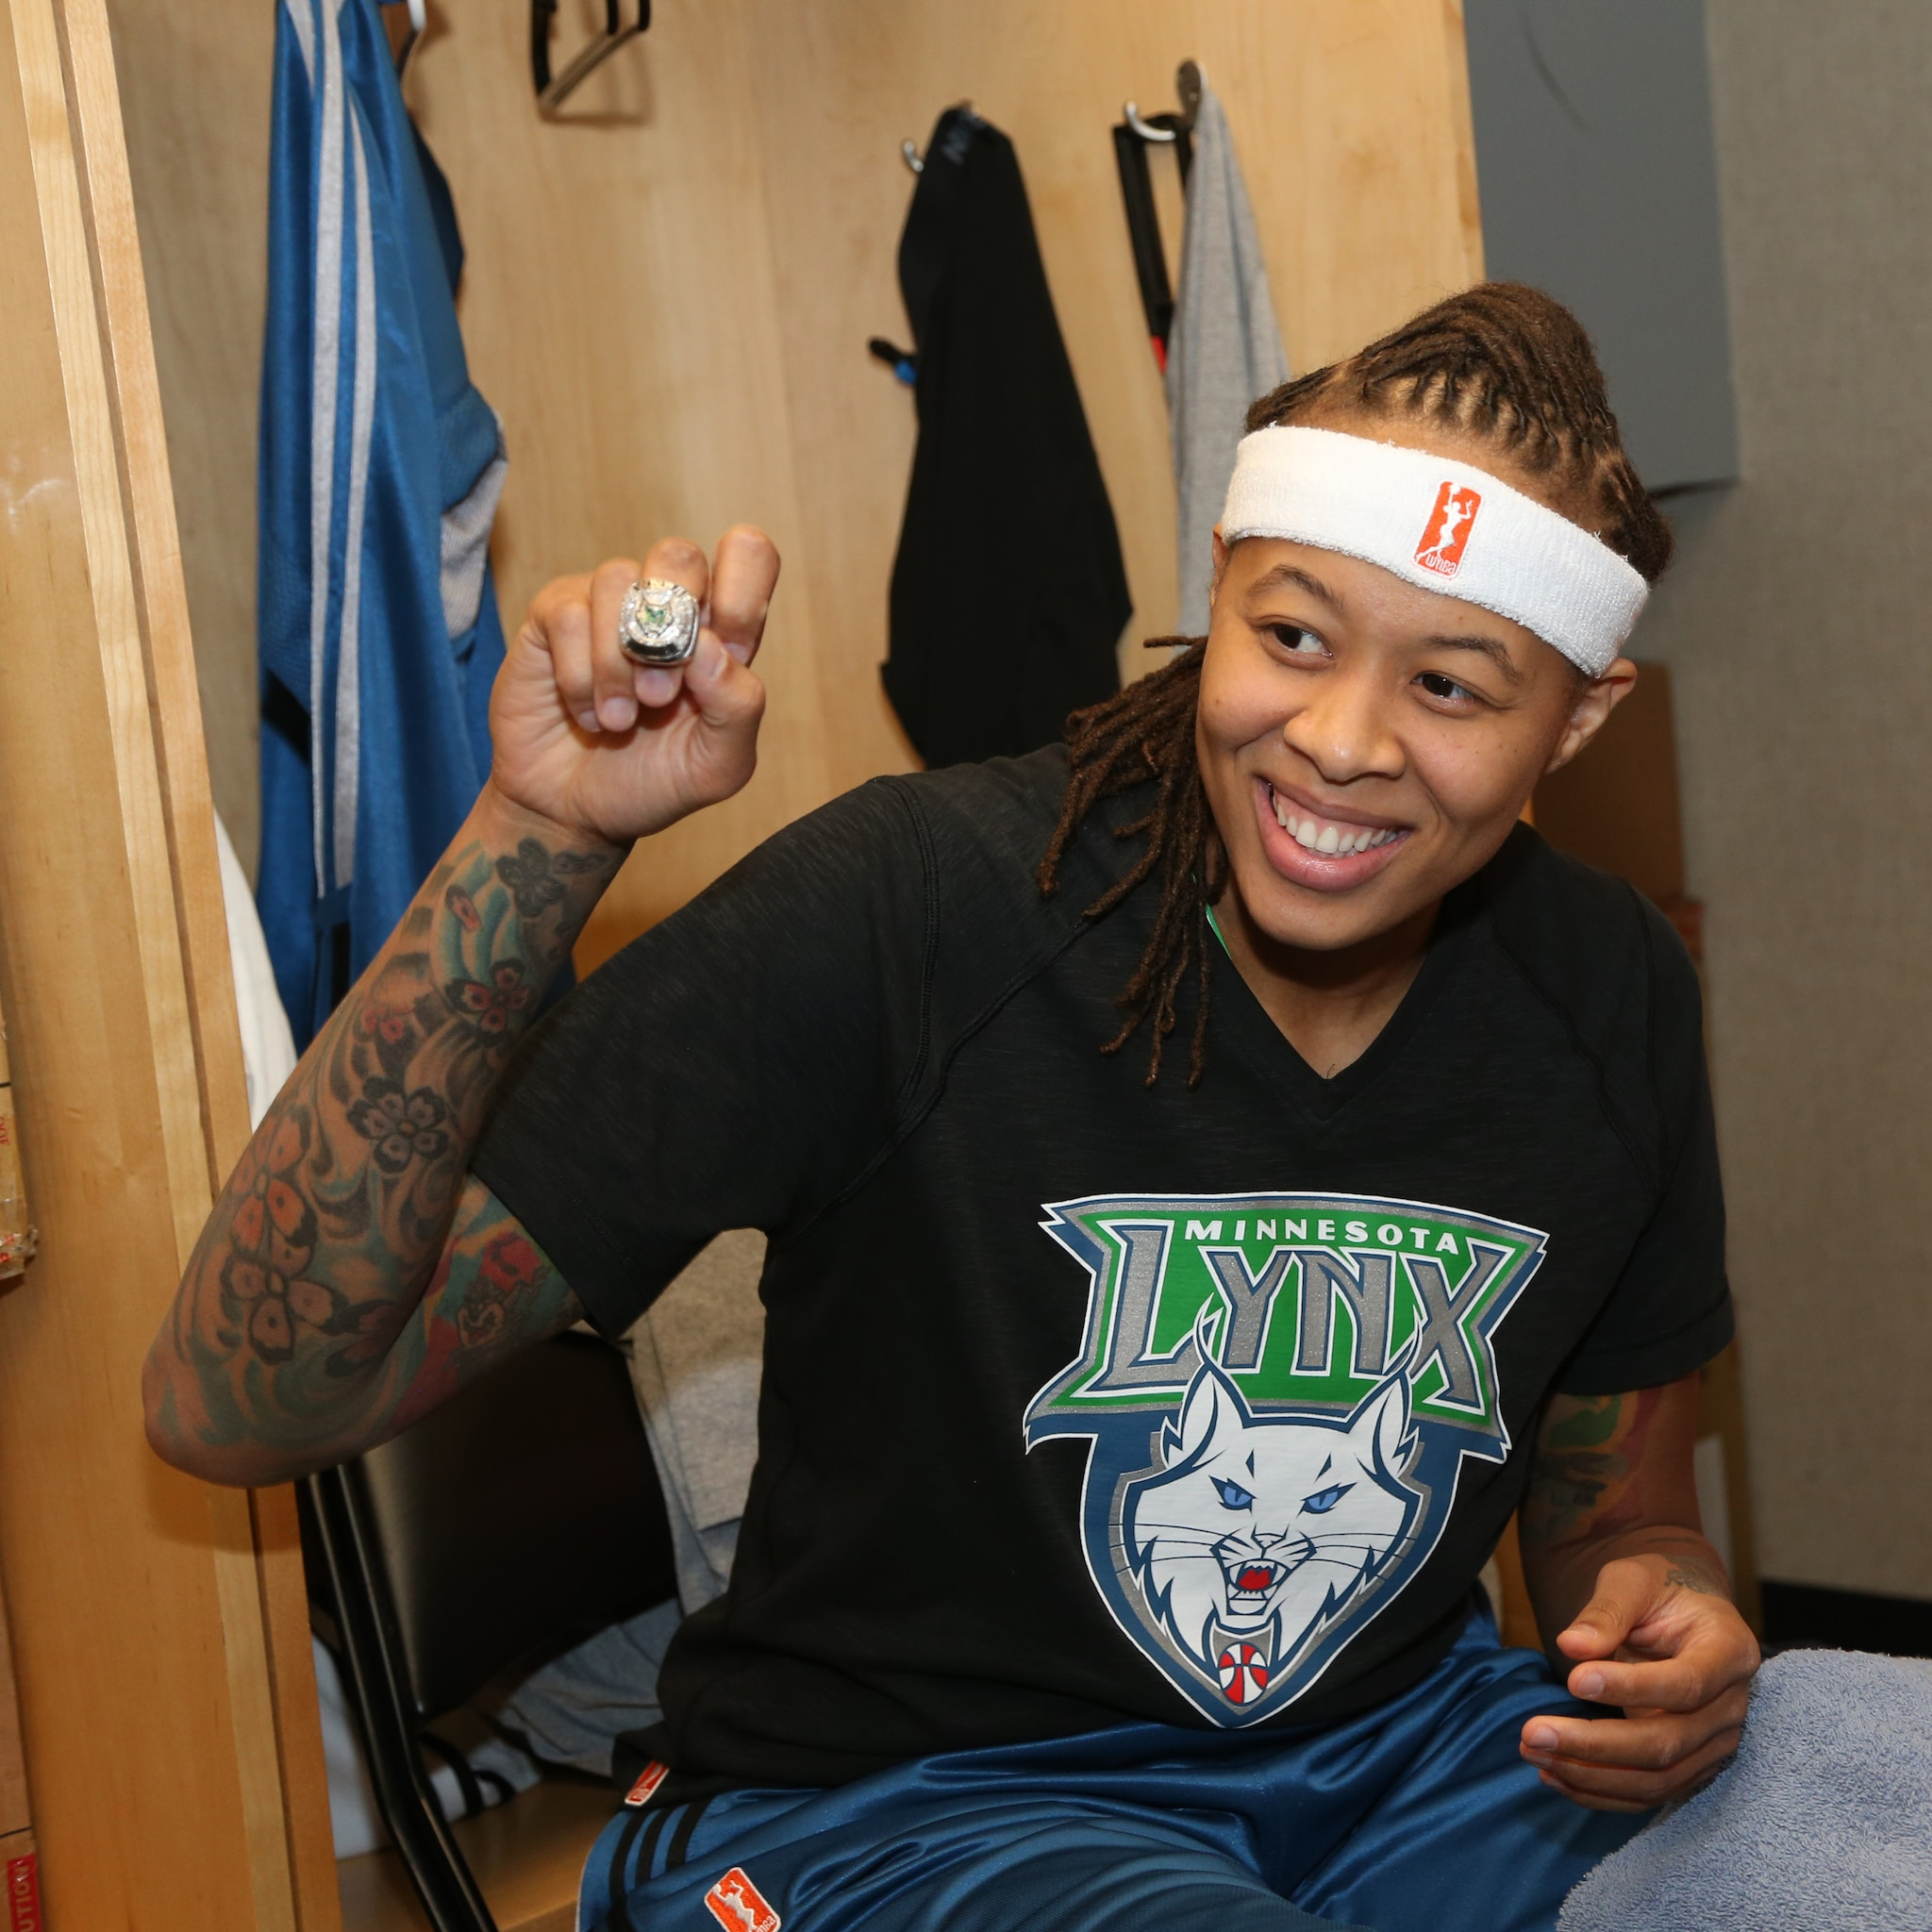 2014's Home-Opener: Last year's home-opener was a time to celebrate as the lynx players and coaches got their 2013 WNBA Championship rings.